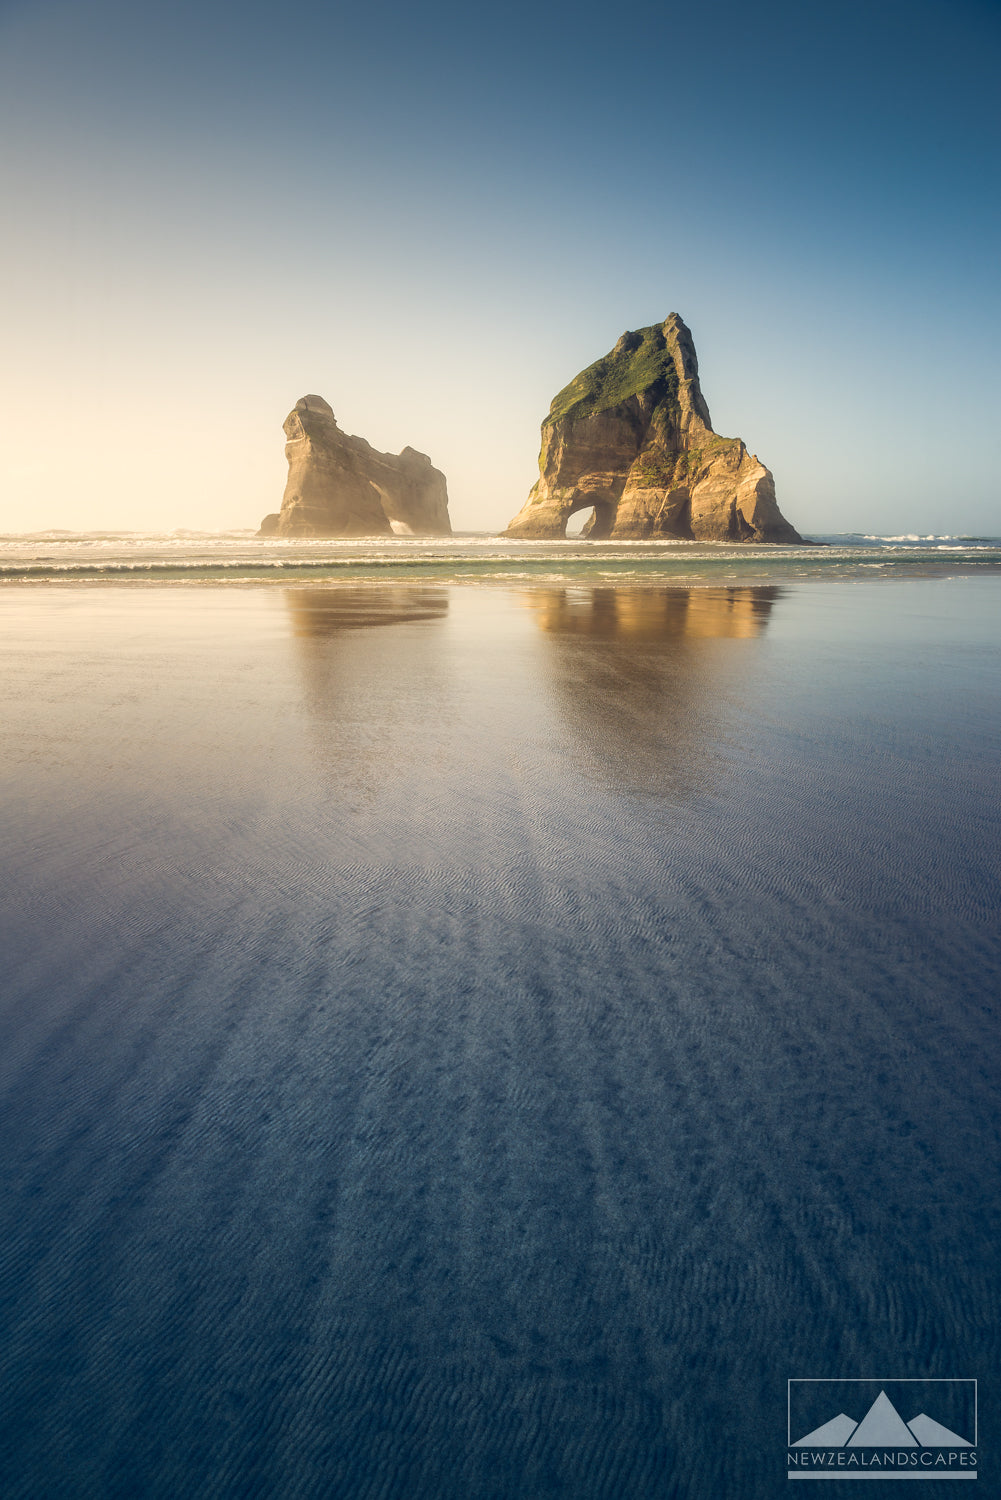 The Pull Towards Archway Islands - Newzealandscapes photo canvas prints New Zealand